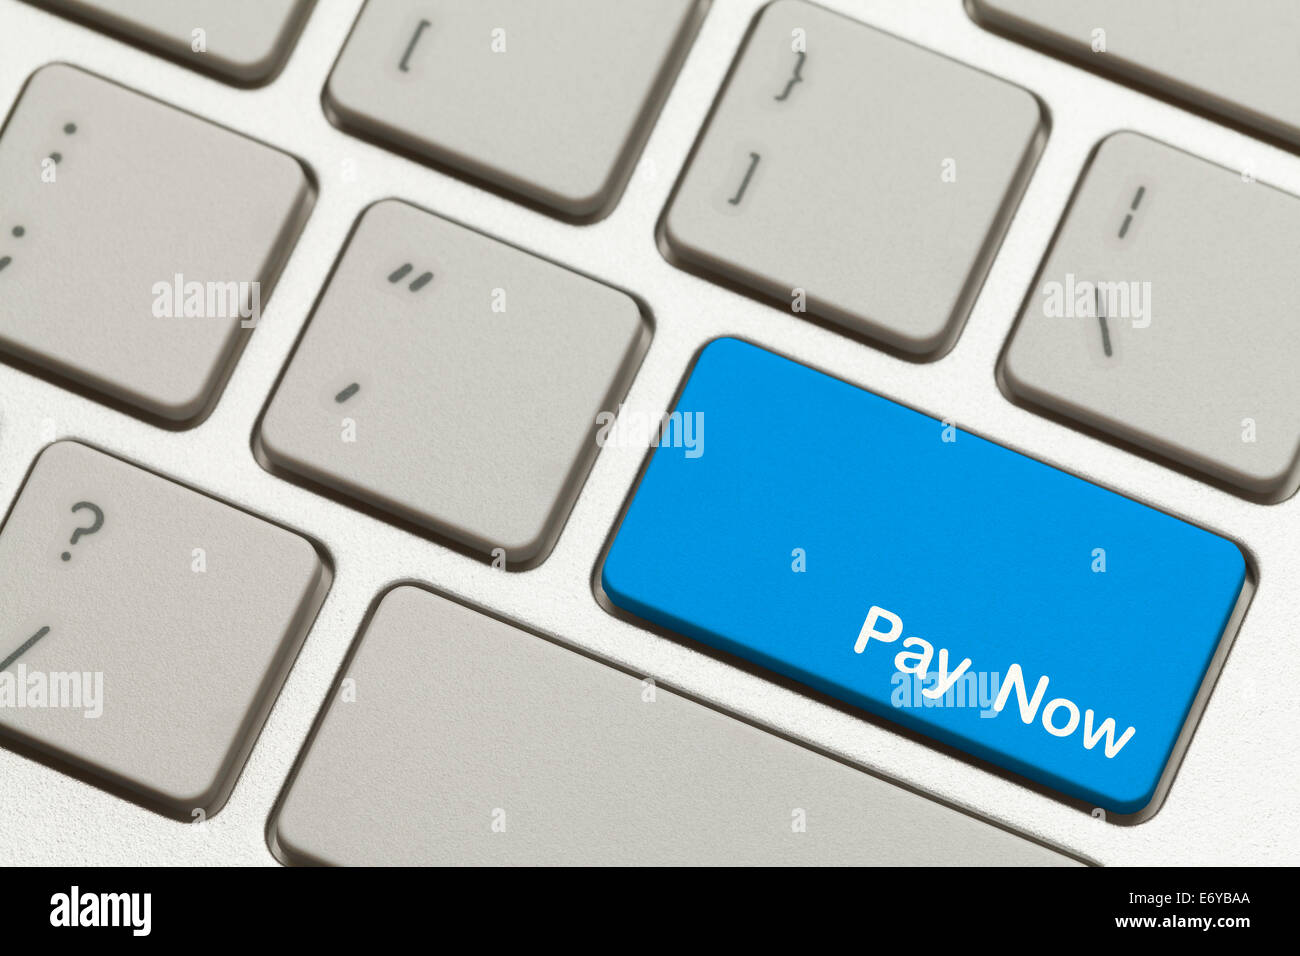 Close Up of Blue Pay Now Key Button on Keyboard. - Stock Image